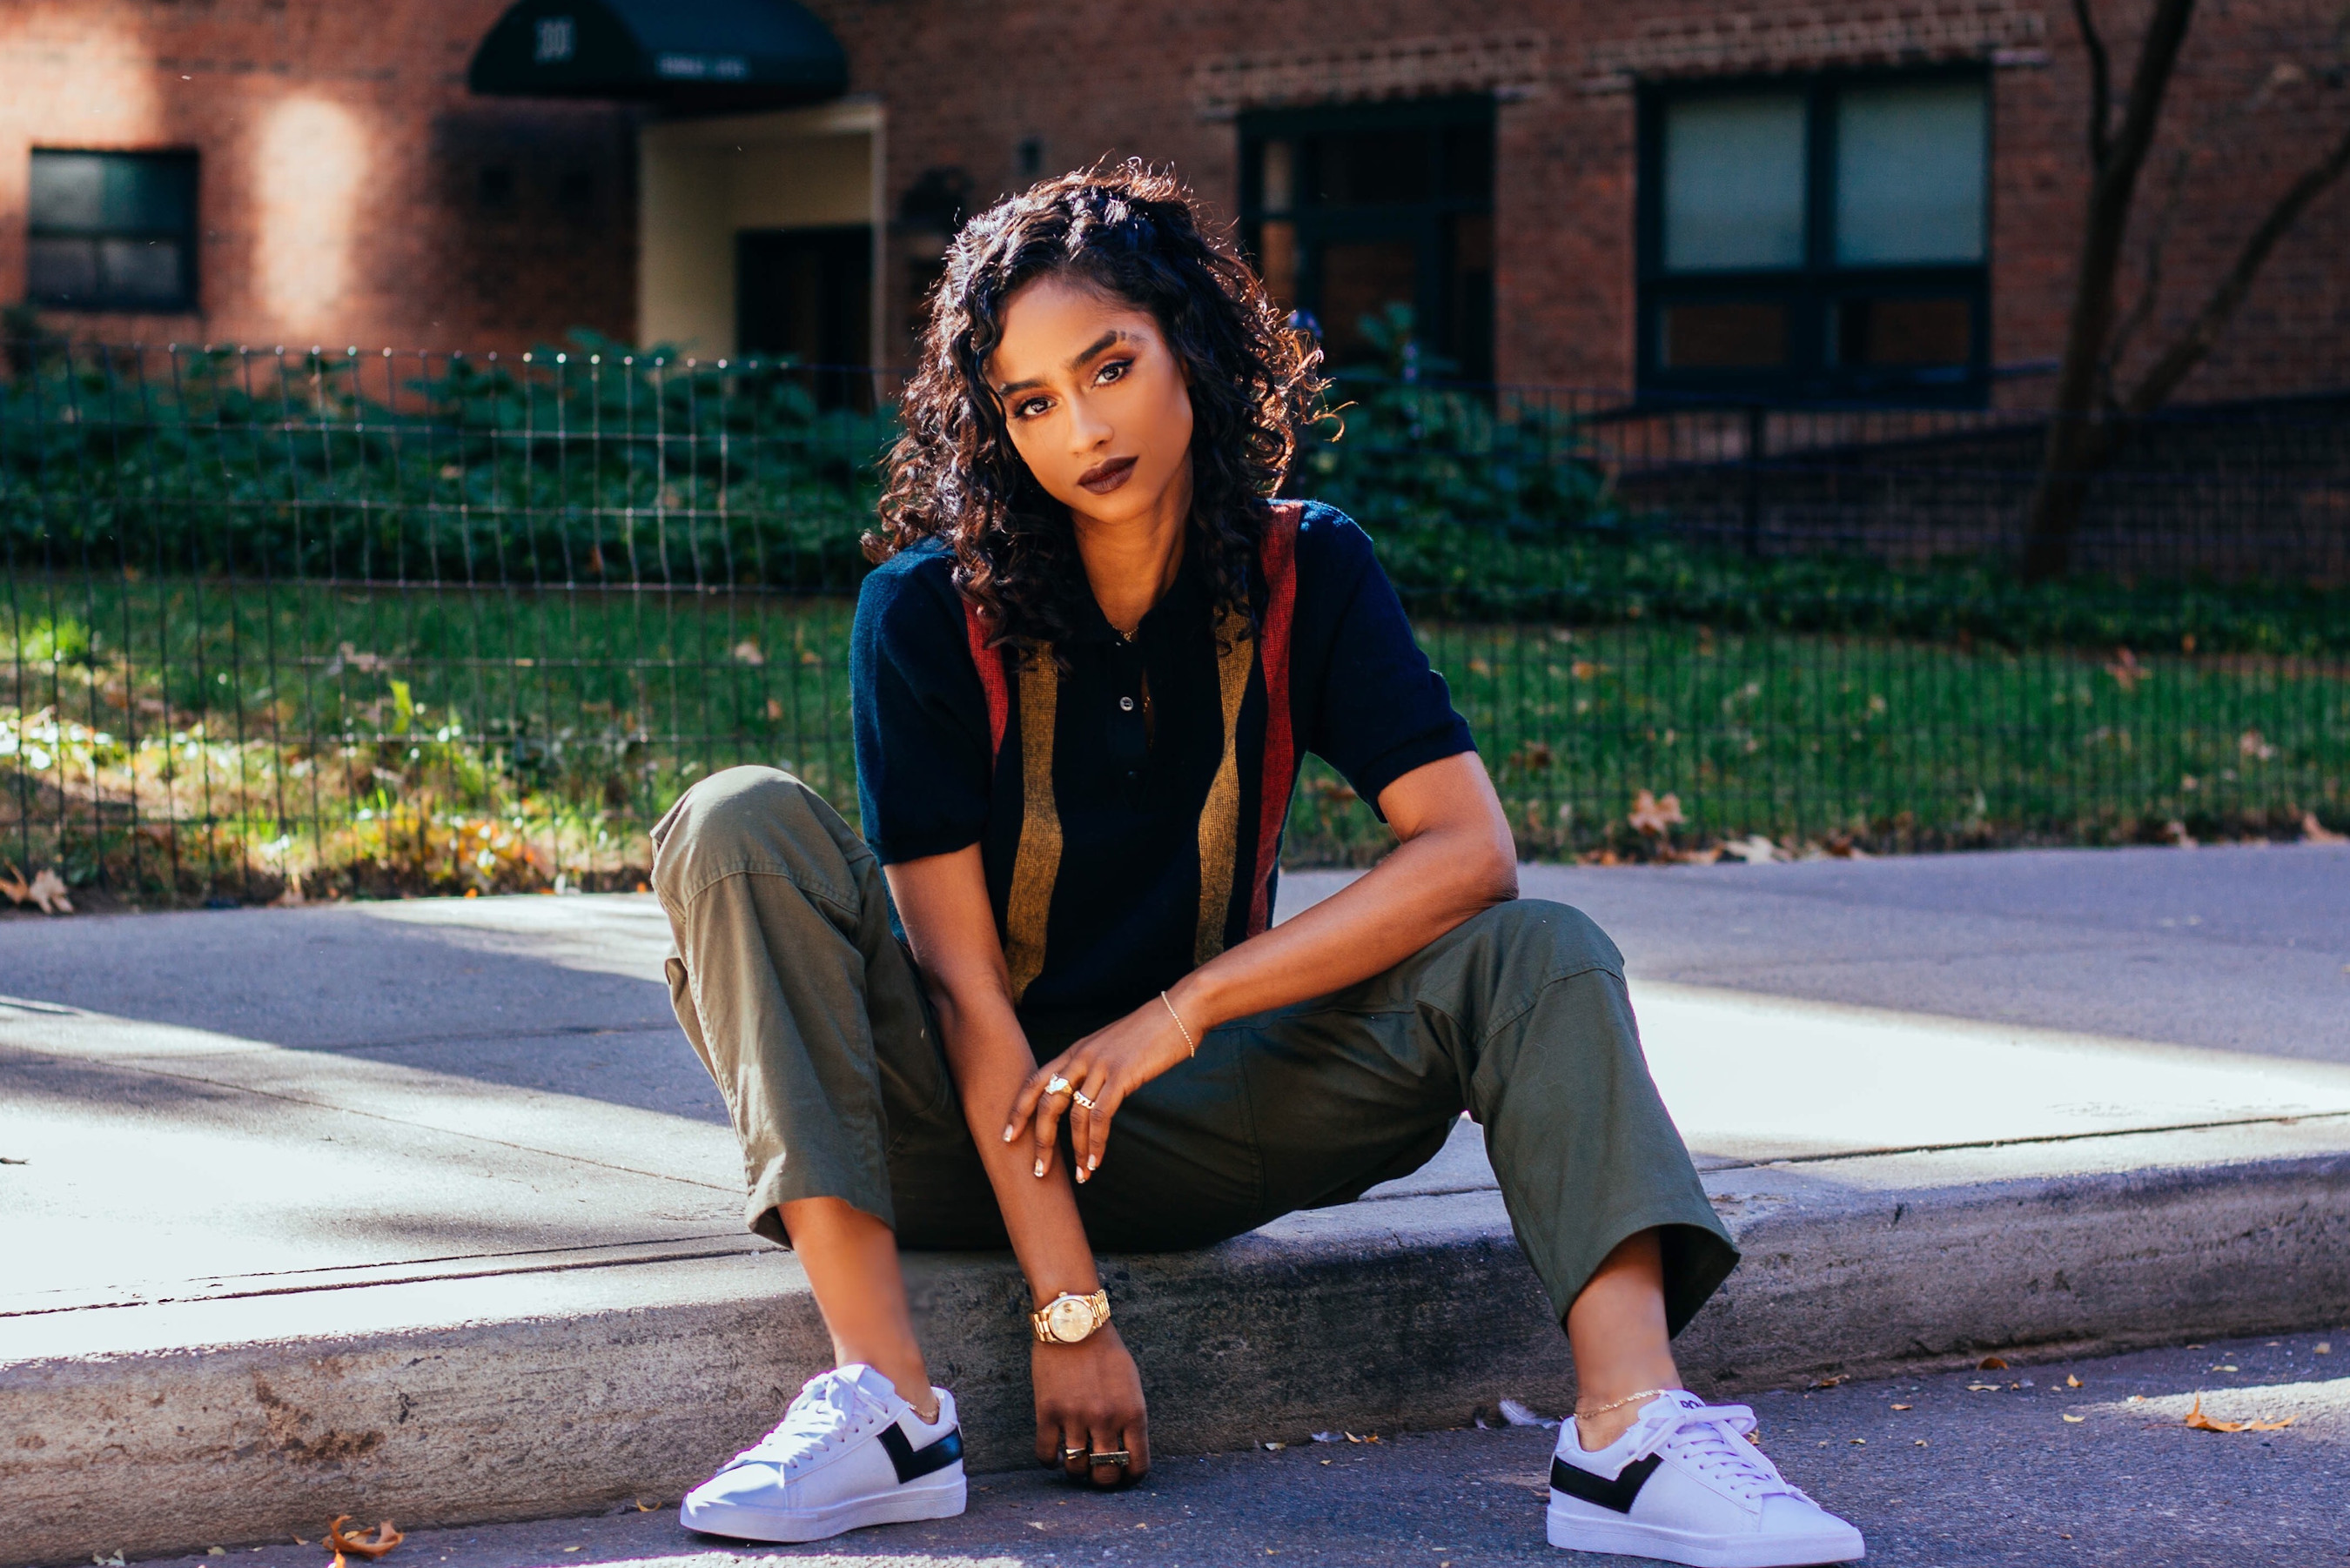 The Pine-Sole™ footwear, designed by fashion designer Vashtie Kola, is a Pine-Sol™ fan's dream collectible. Get yours now at PineStore.com!